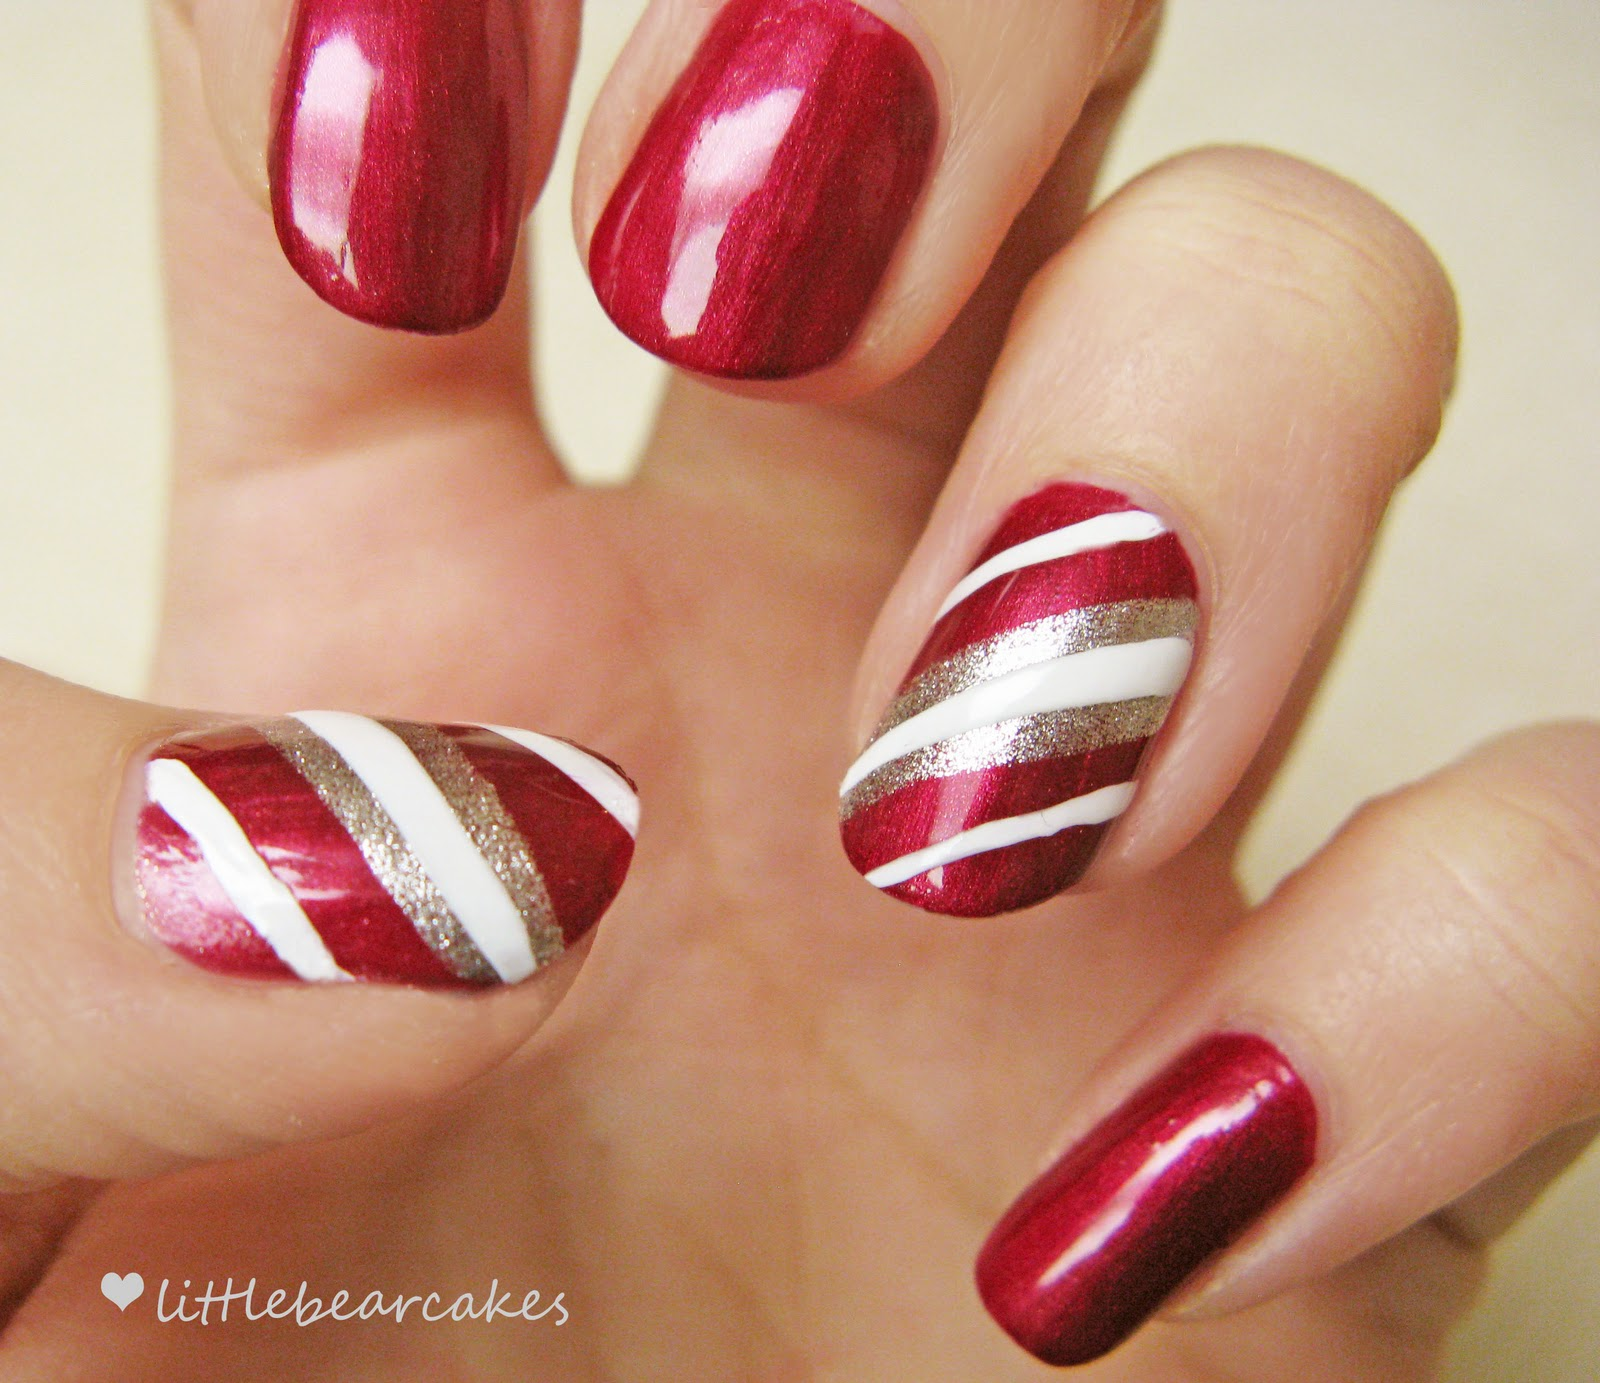 Nails Candy Cane Done Well These Can Be The Icing On